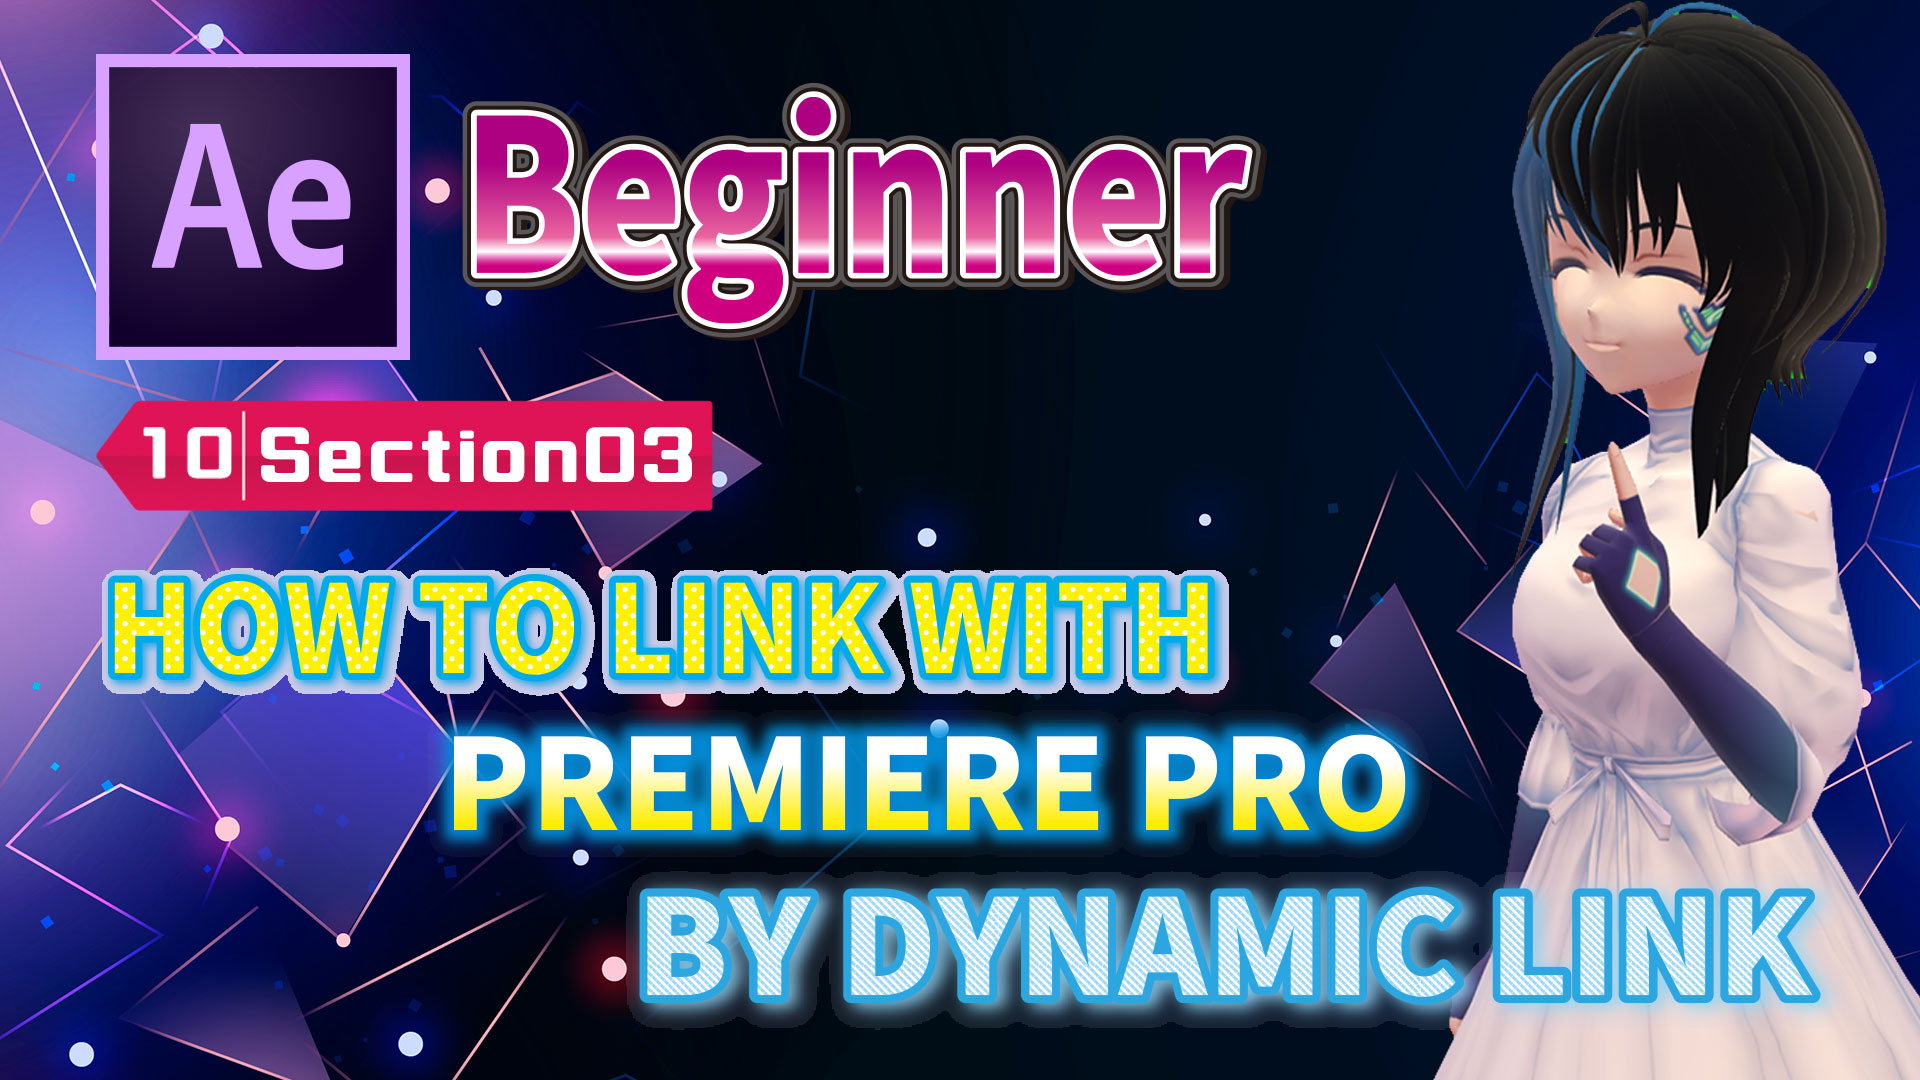 HOW TO LINK WITH PREMIERE PRO BY DYNAMIC LINK